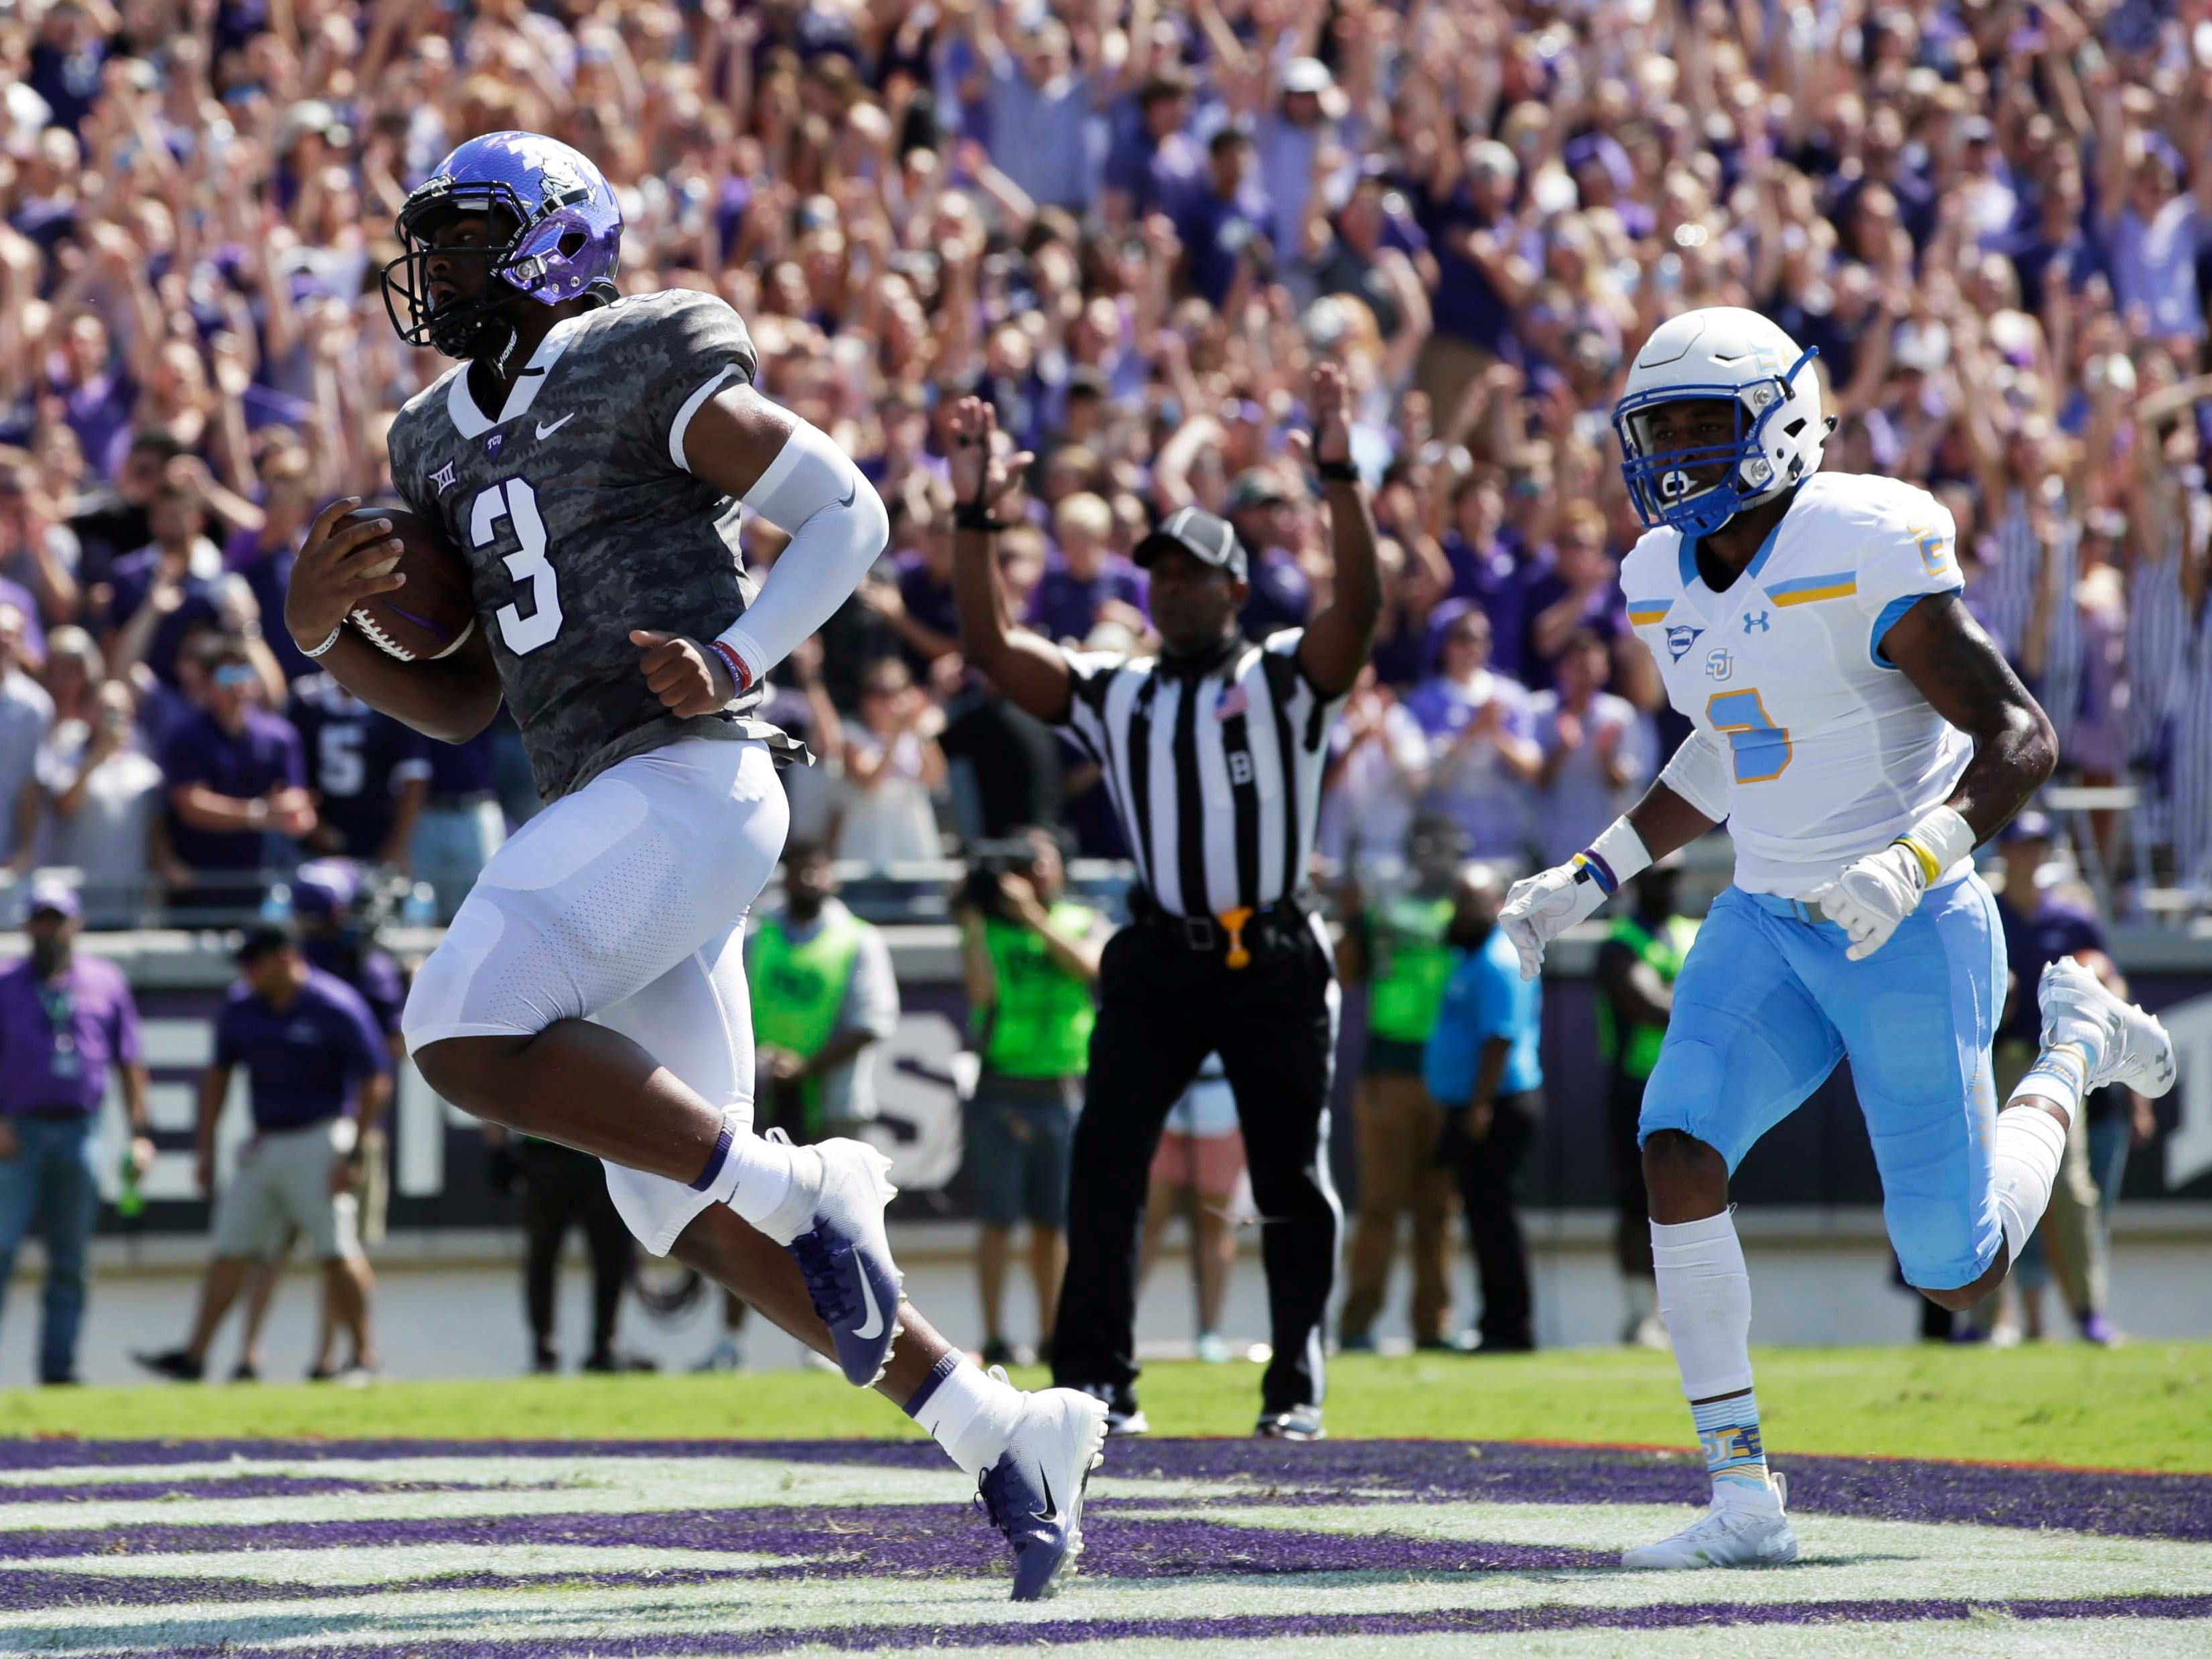 TCU quarterback Shawn Robinson (3) scores a touchdown in the first quarter against Southern.